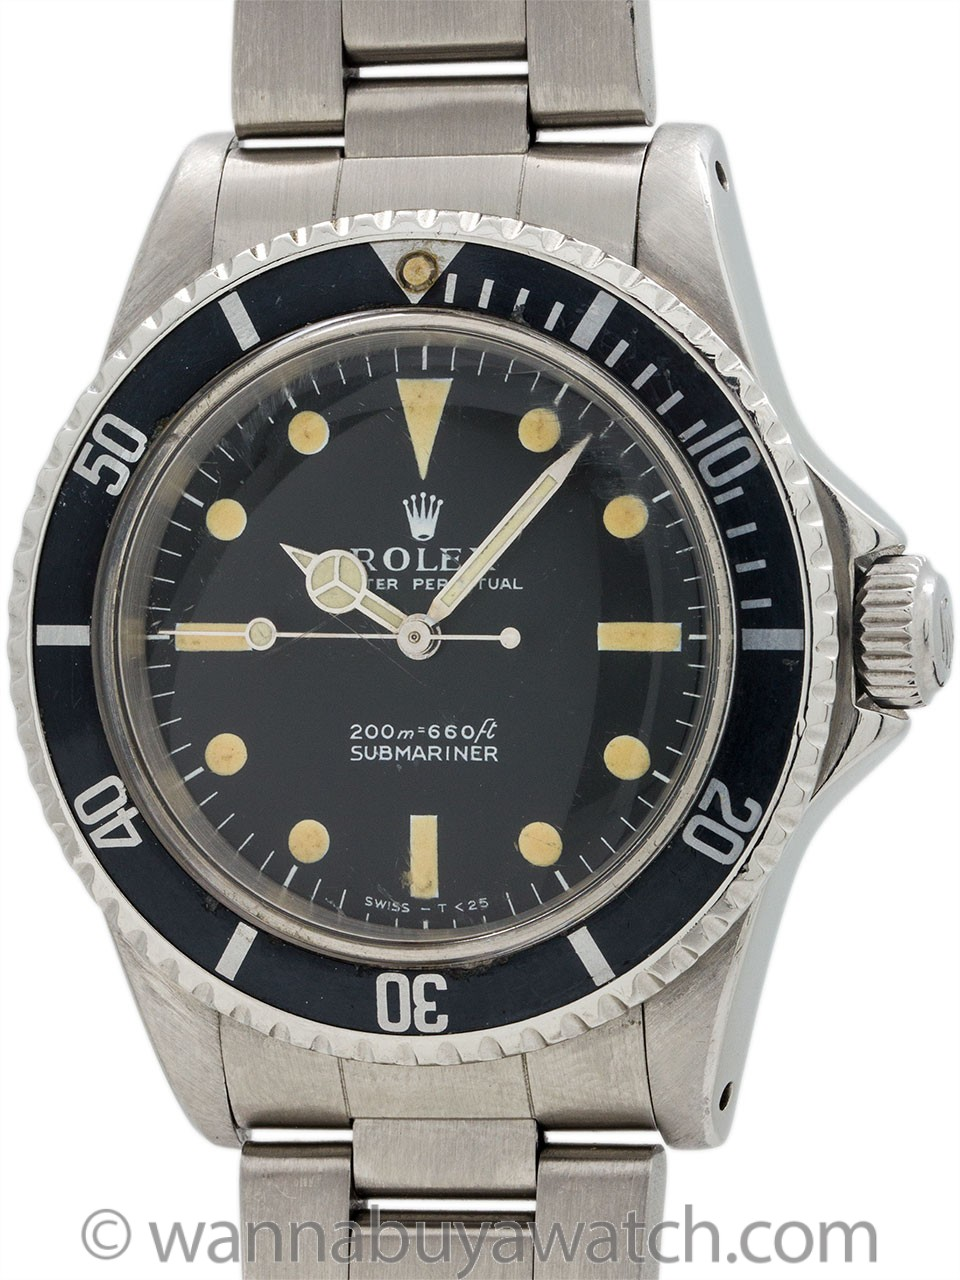 Rolex Submariner Meters 1st ref 5513 circa 1966